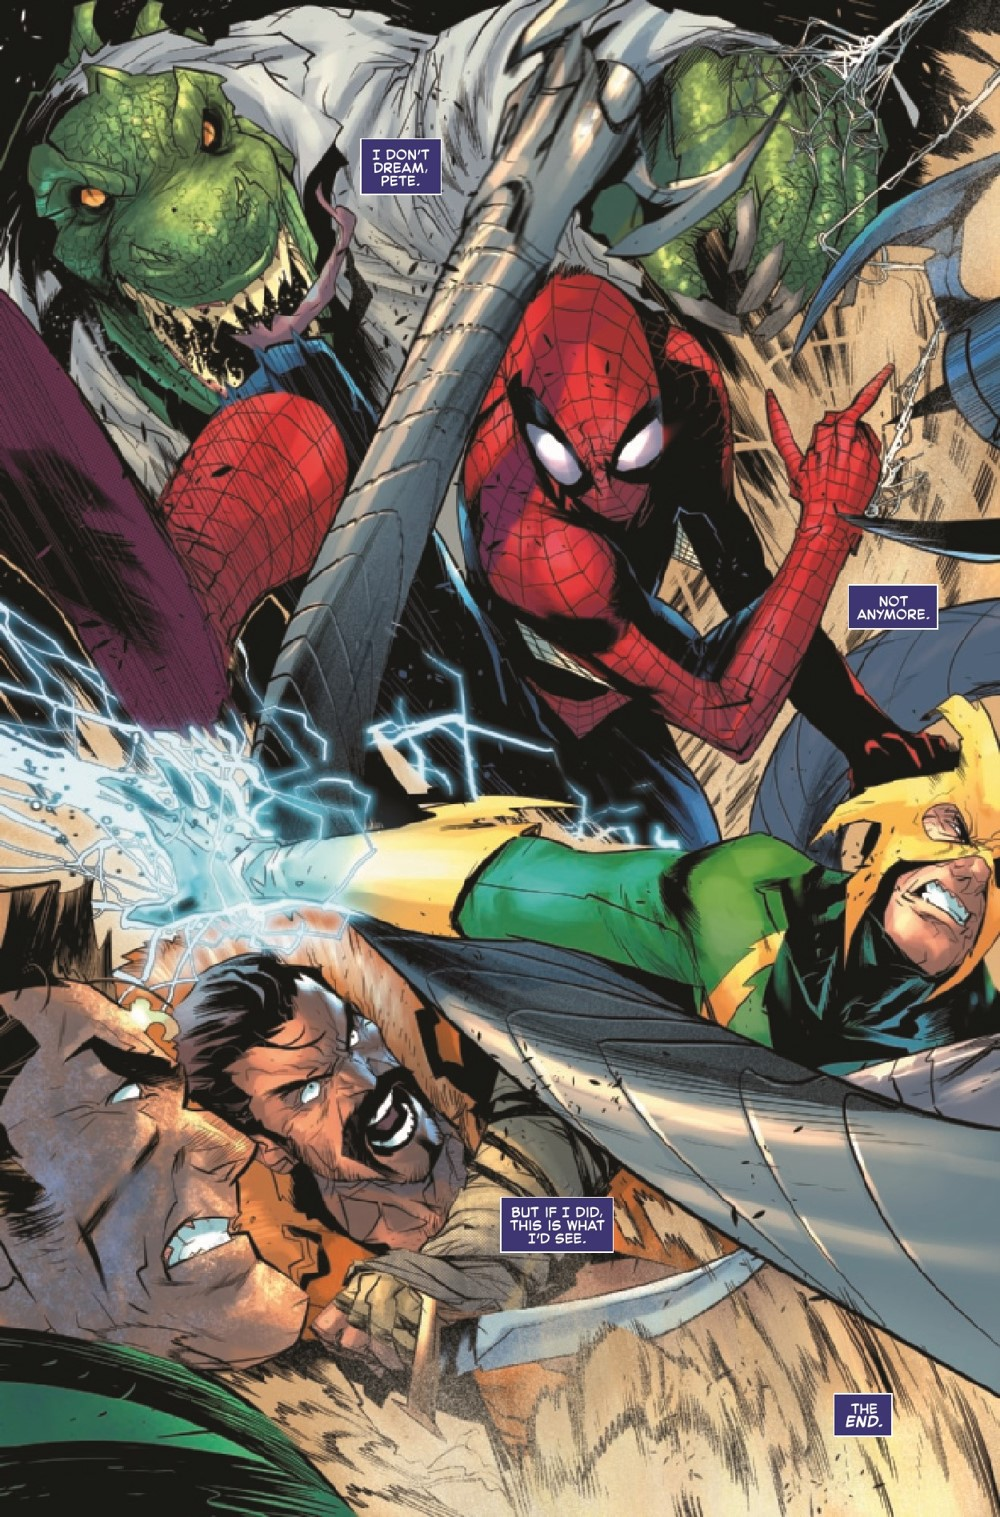 ASM2018071_Preview-3 ComicList Previews: AMAZING SPIDER-MAN #71